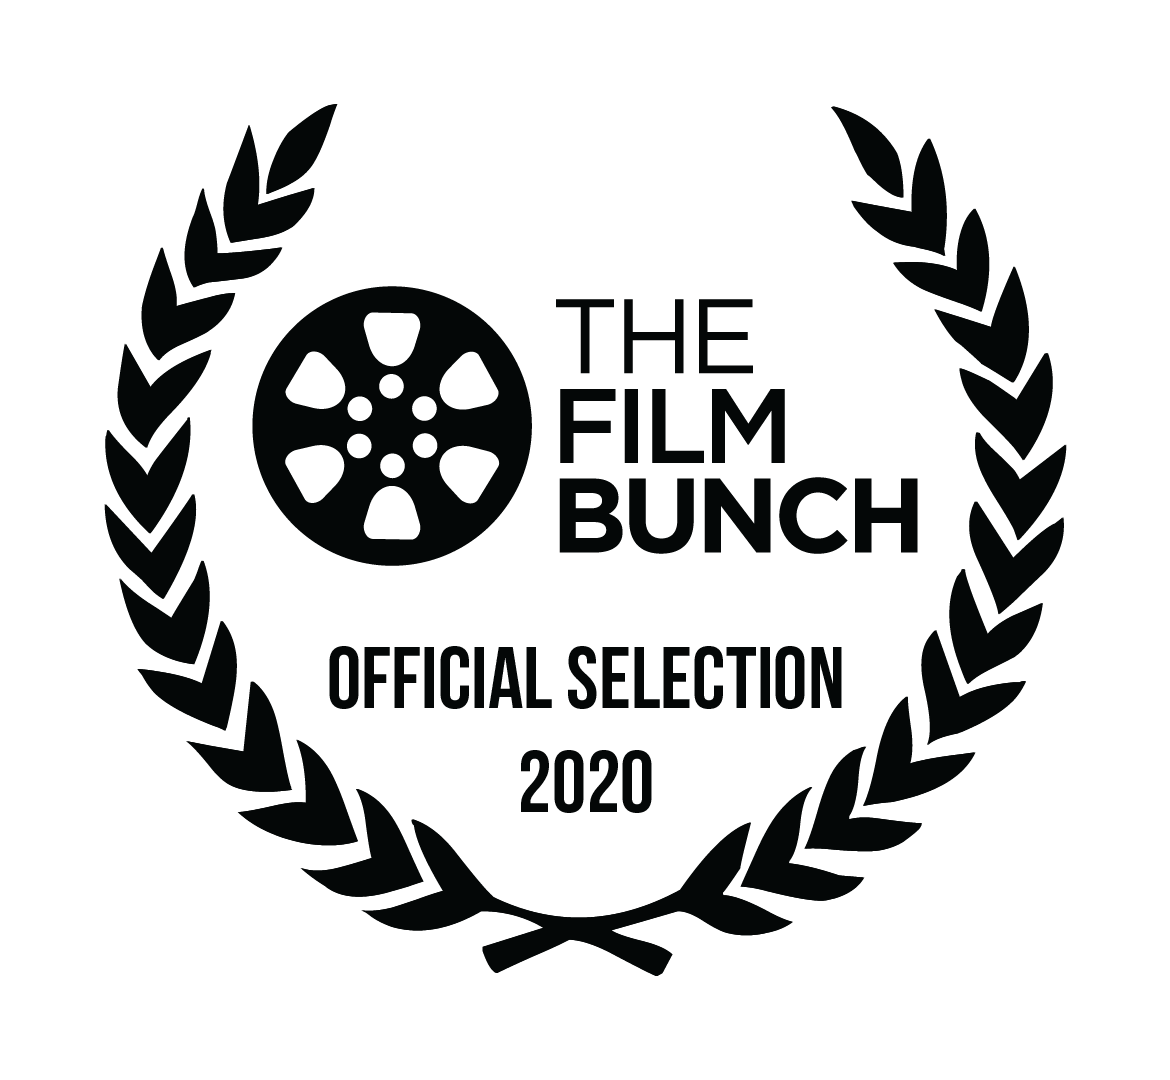 The film bunch laurel 2020 black